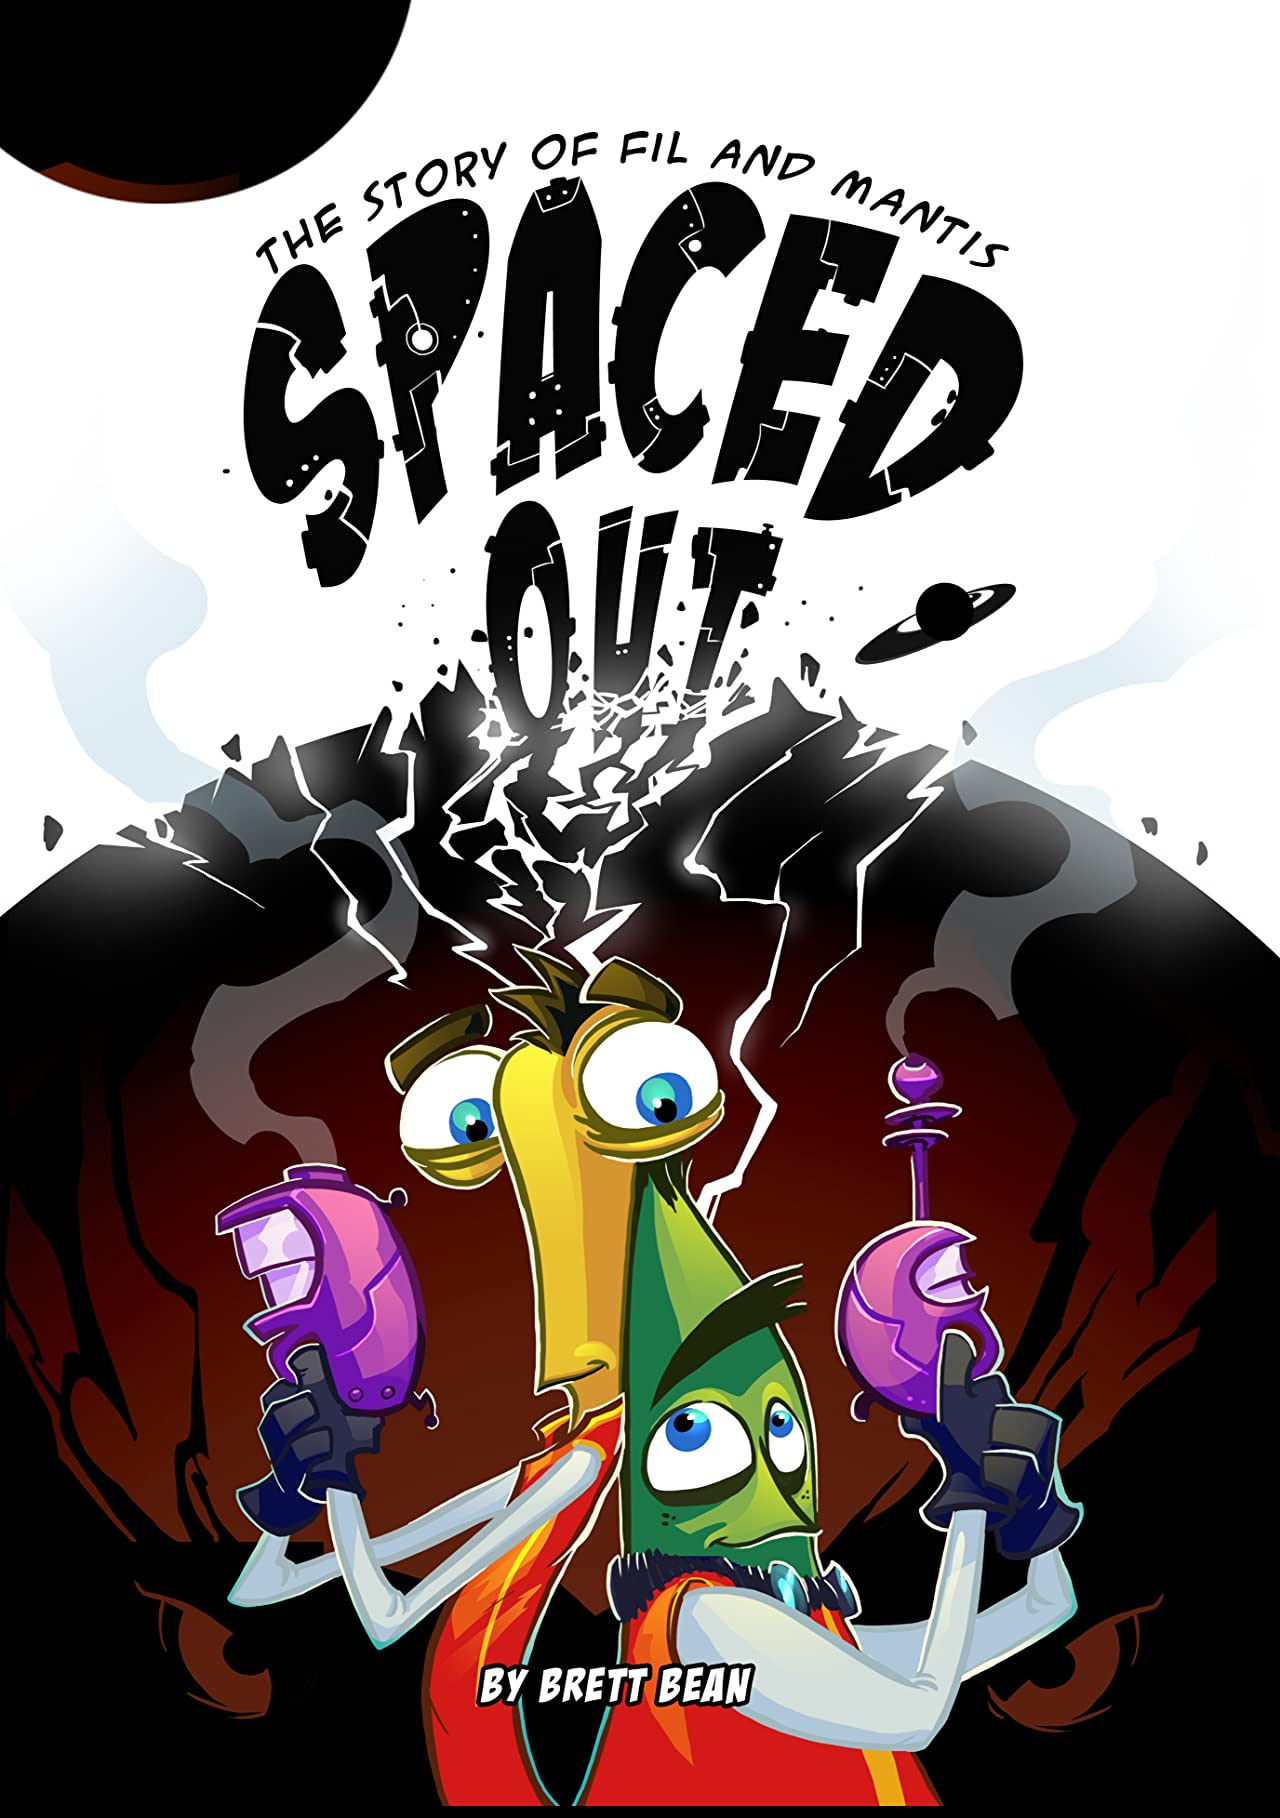 Spaced Out! The Story of Fil & Mantis